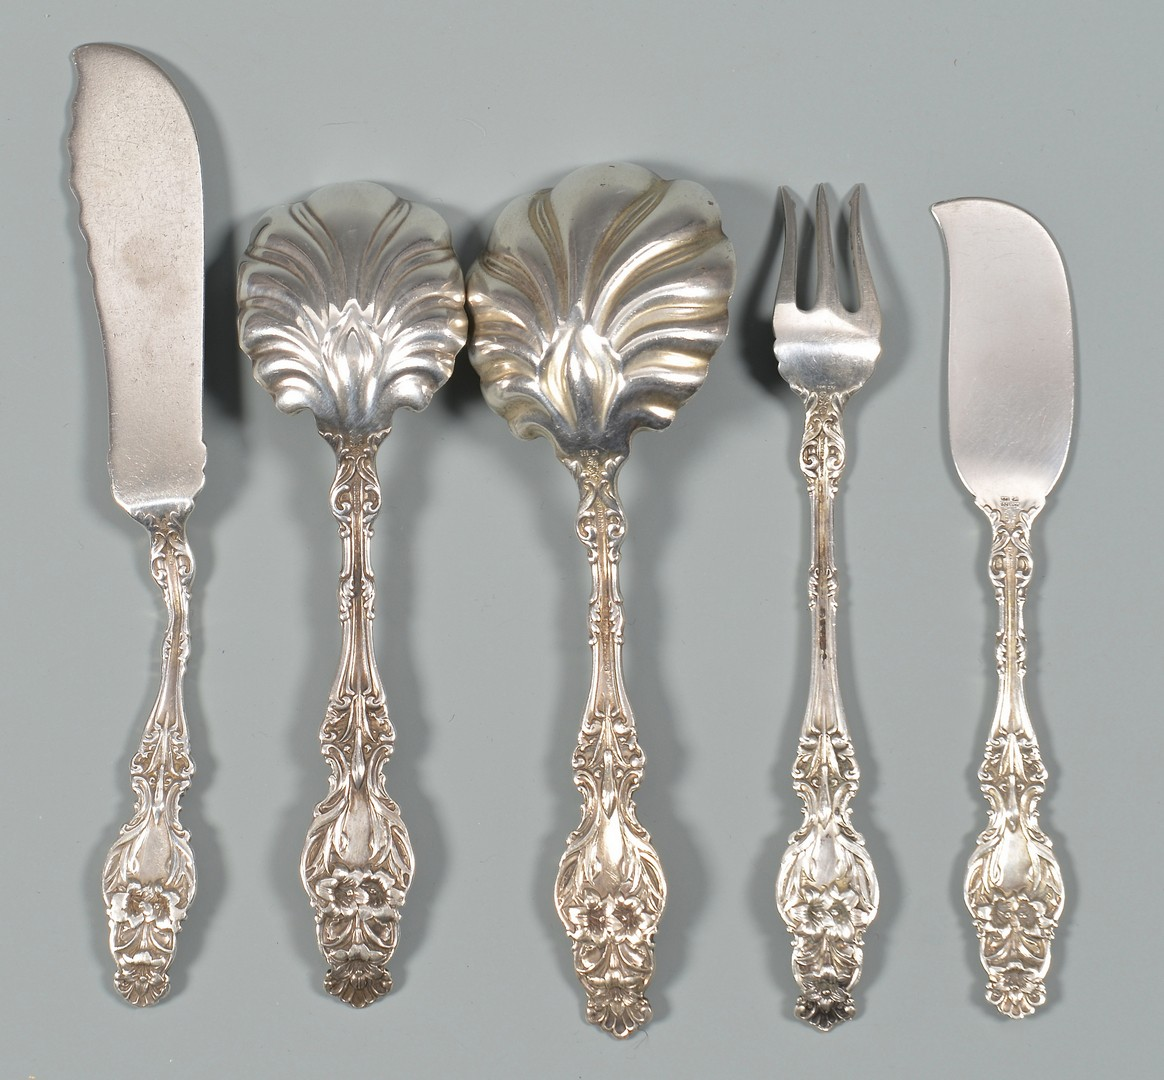 Lot 348: Whiting Sterling Flatware, Lily Pattern